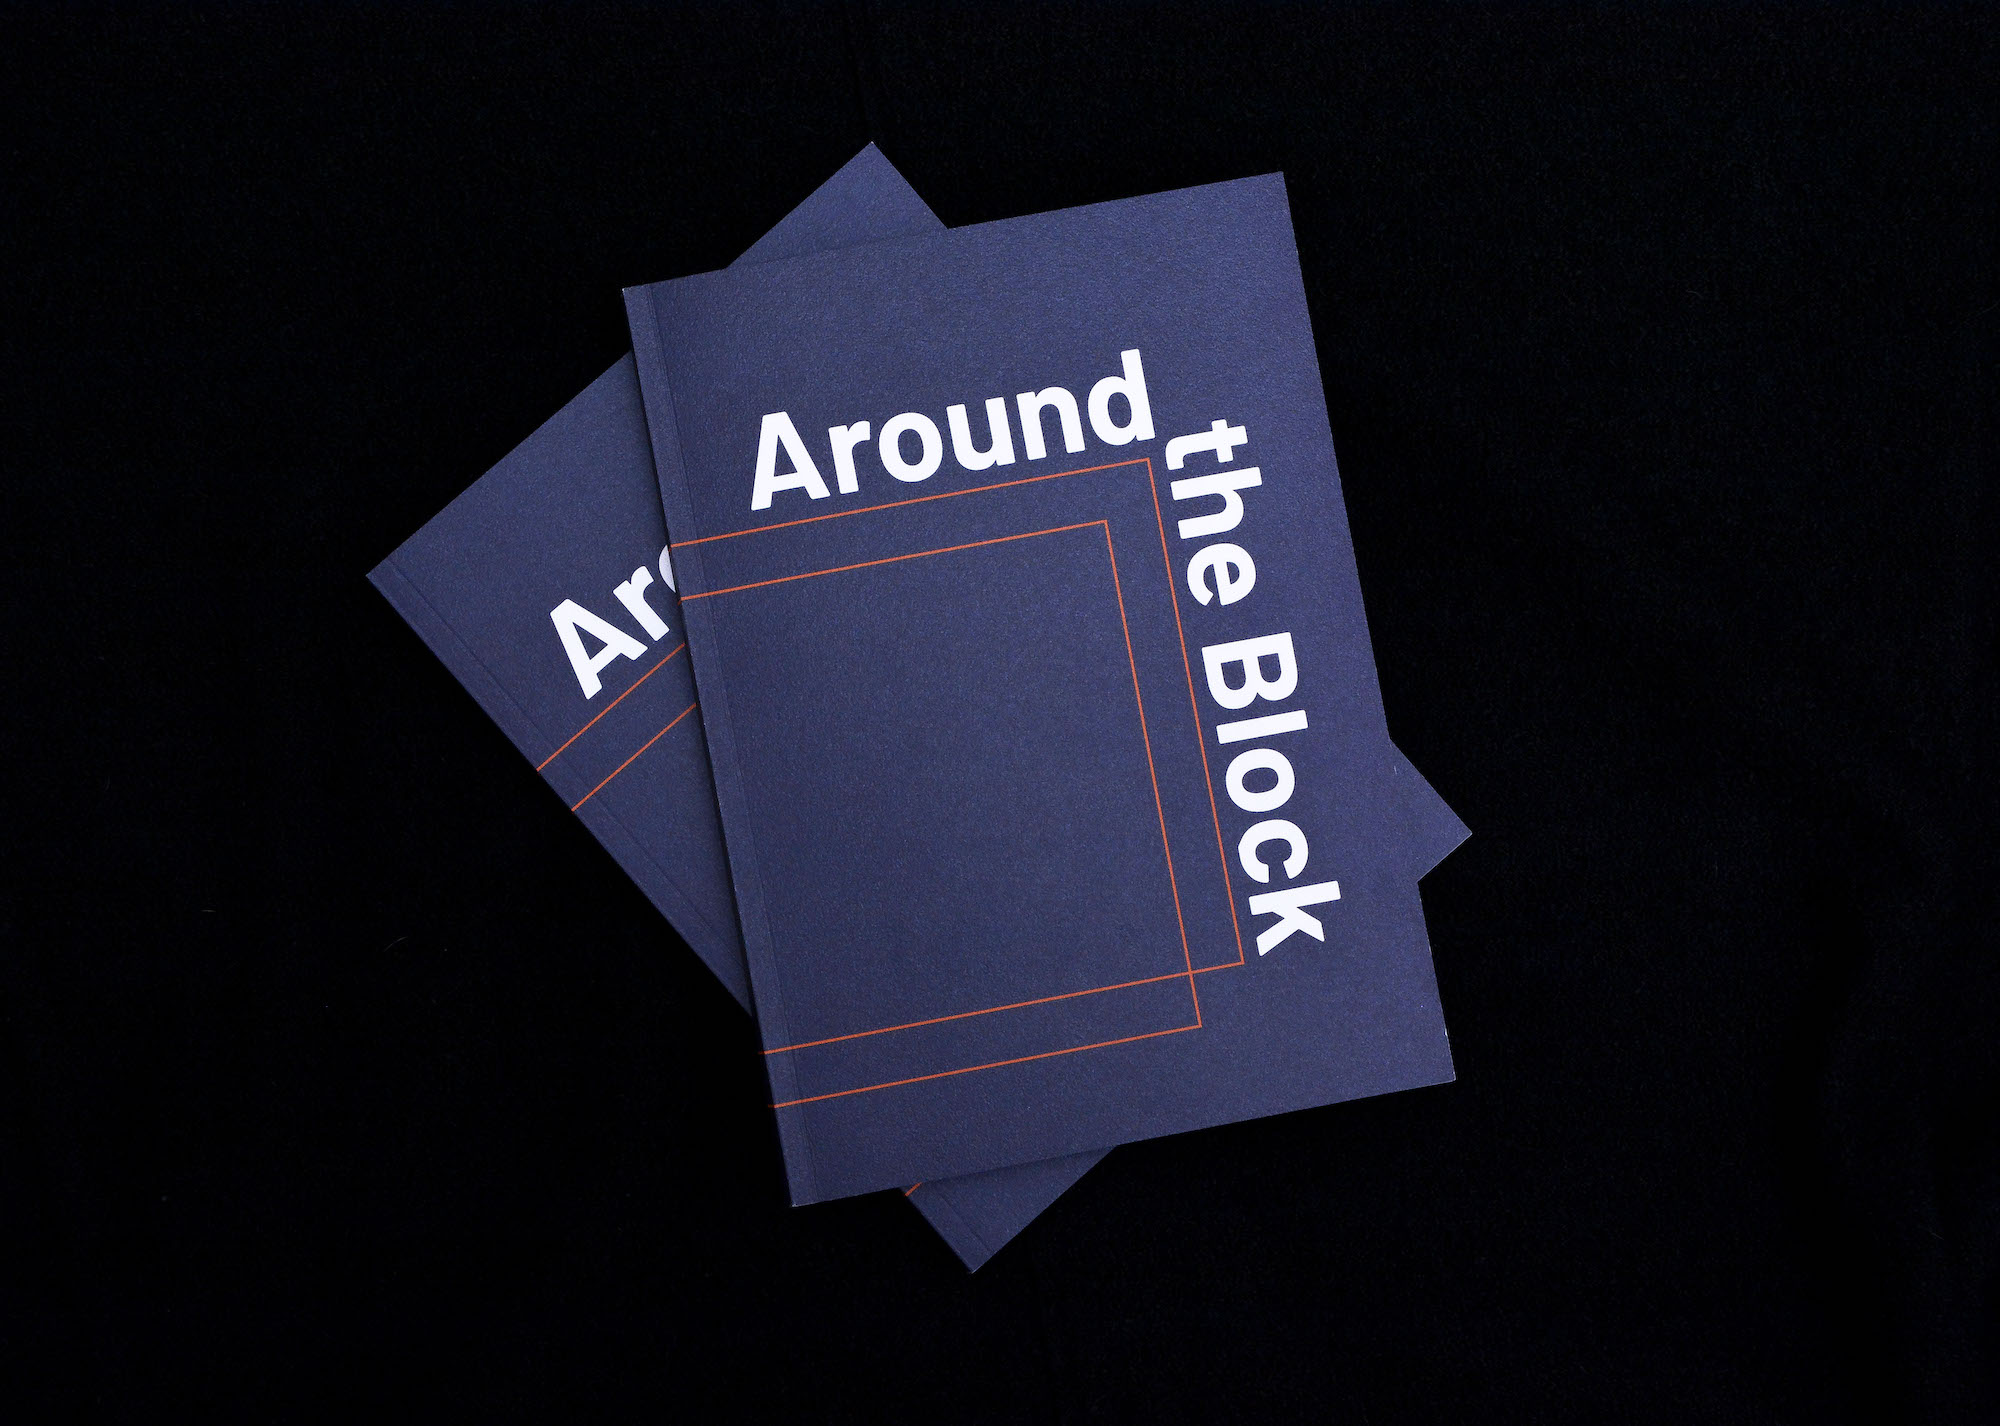 Branded media production for Fractal Launchpad GmbH - We helped Fractal Condense the knowledge of their community about the European Blockchain Ecosystem. was the first physical edition of Around the Block Magazine